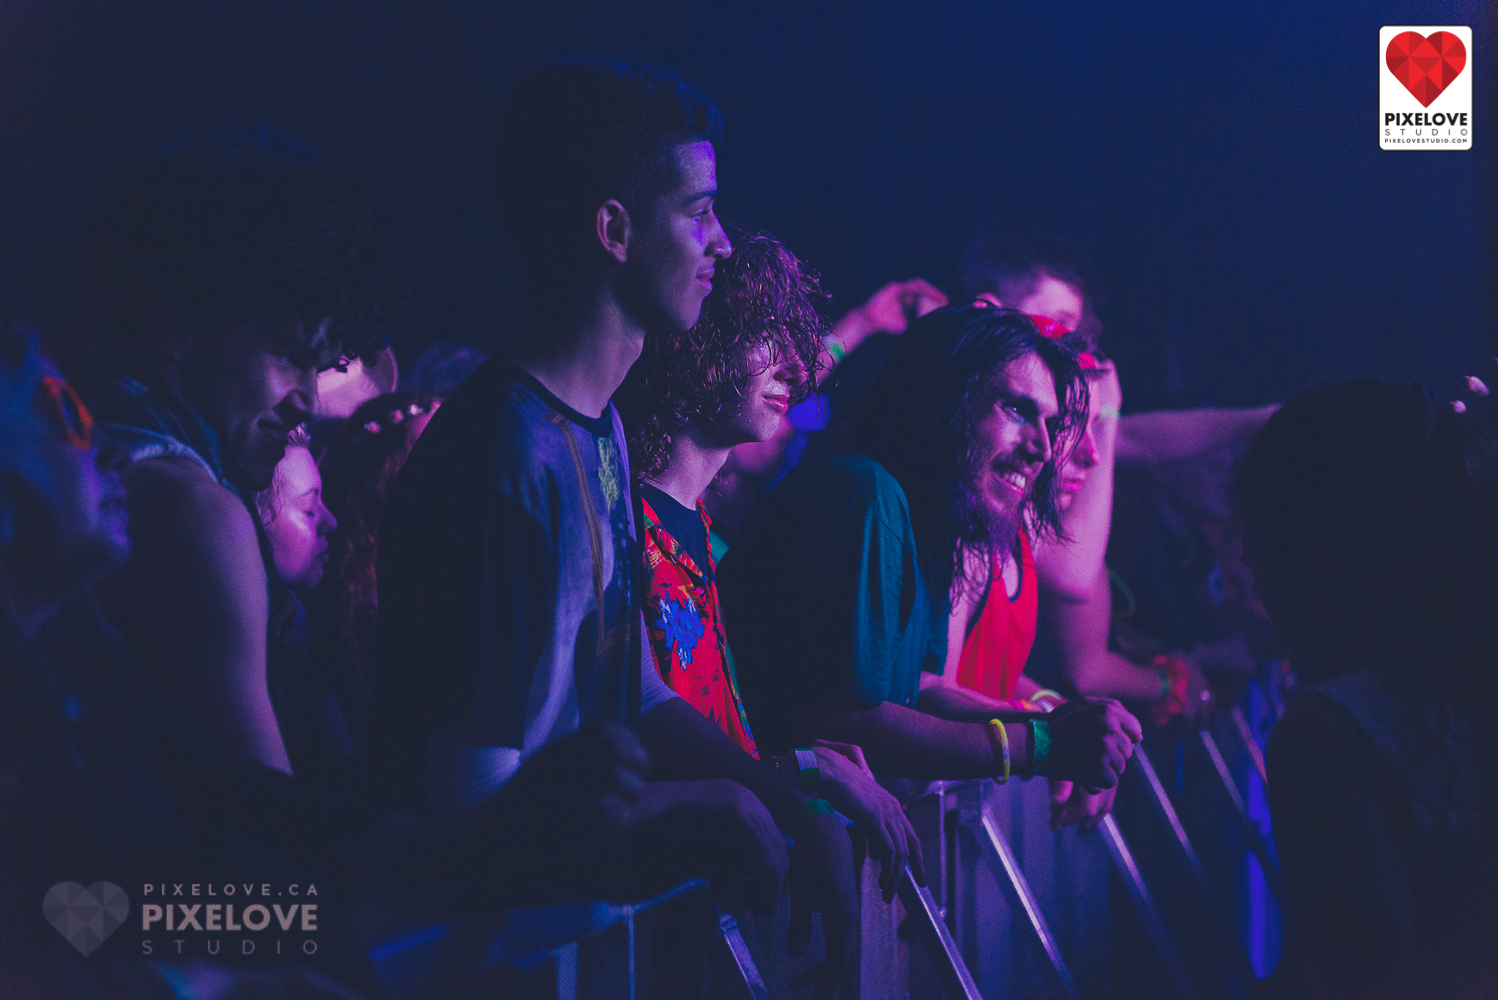 Skins IX electronic music event in Montreal. Photography by Pixelove Studio music photographer in Montreal, Canada.